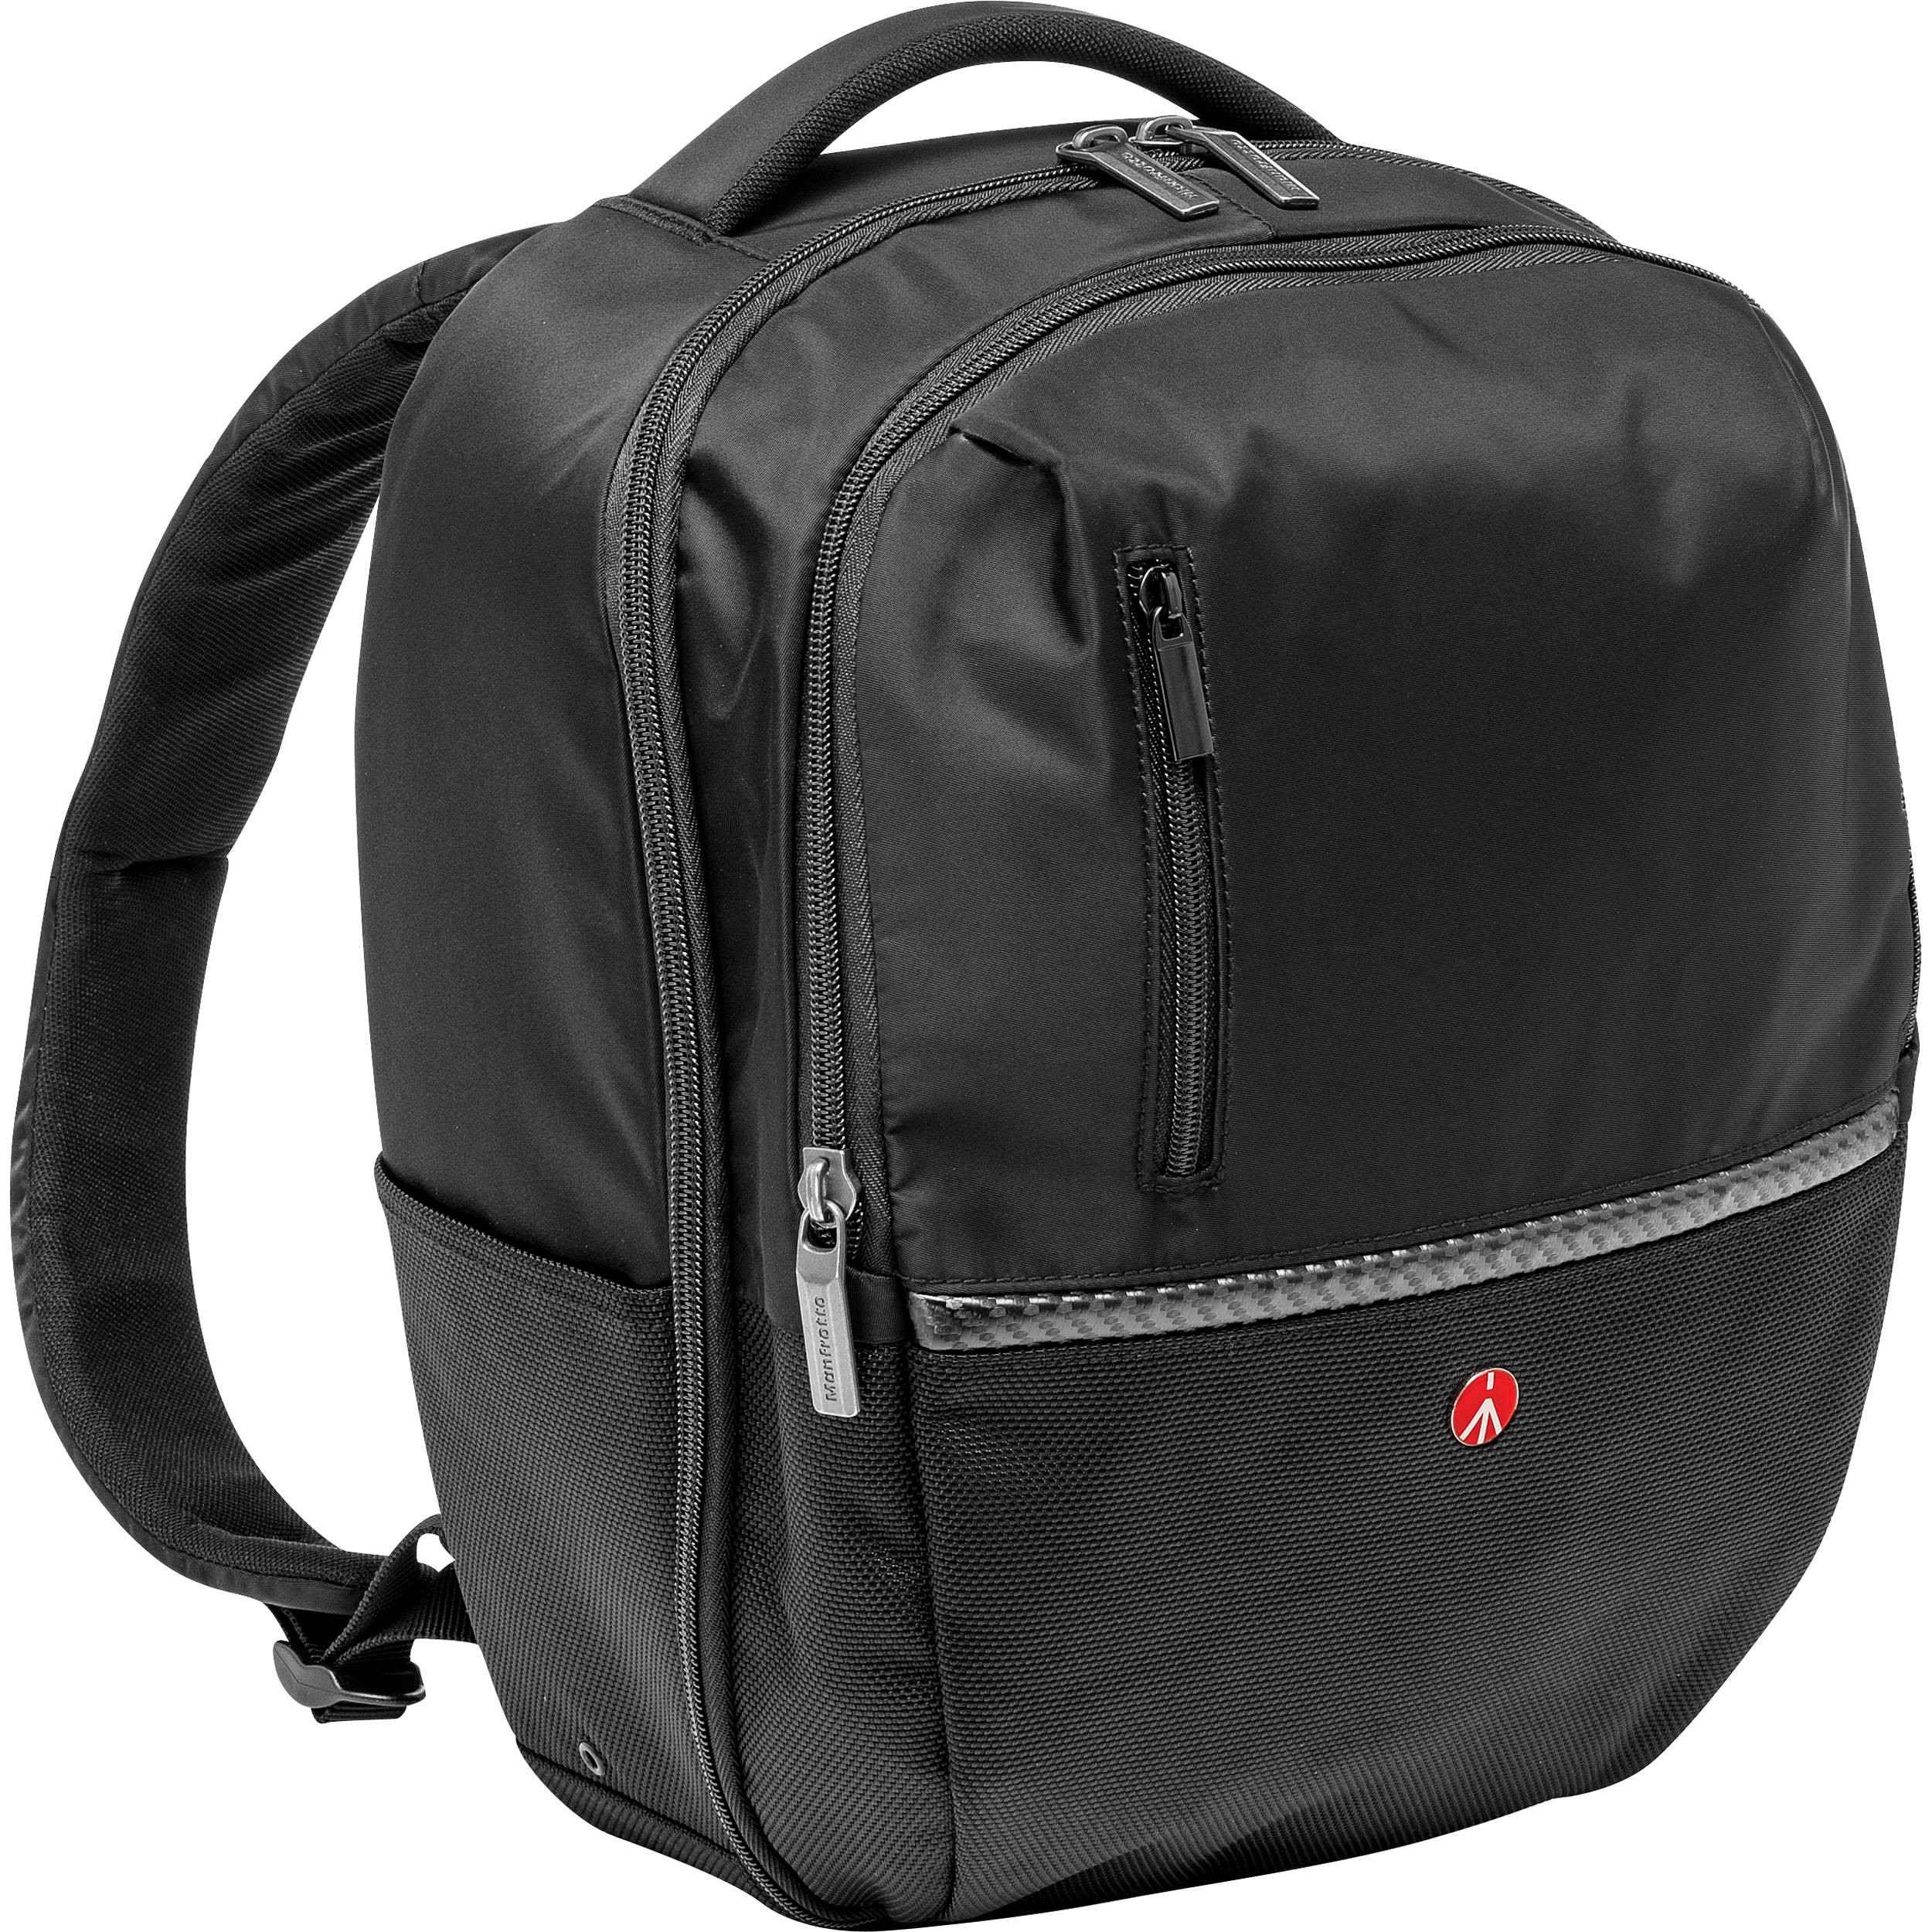 Рюкзак для фотоаппарата Manfrotto Gear Backpack M (MB MA-BP-GPM)